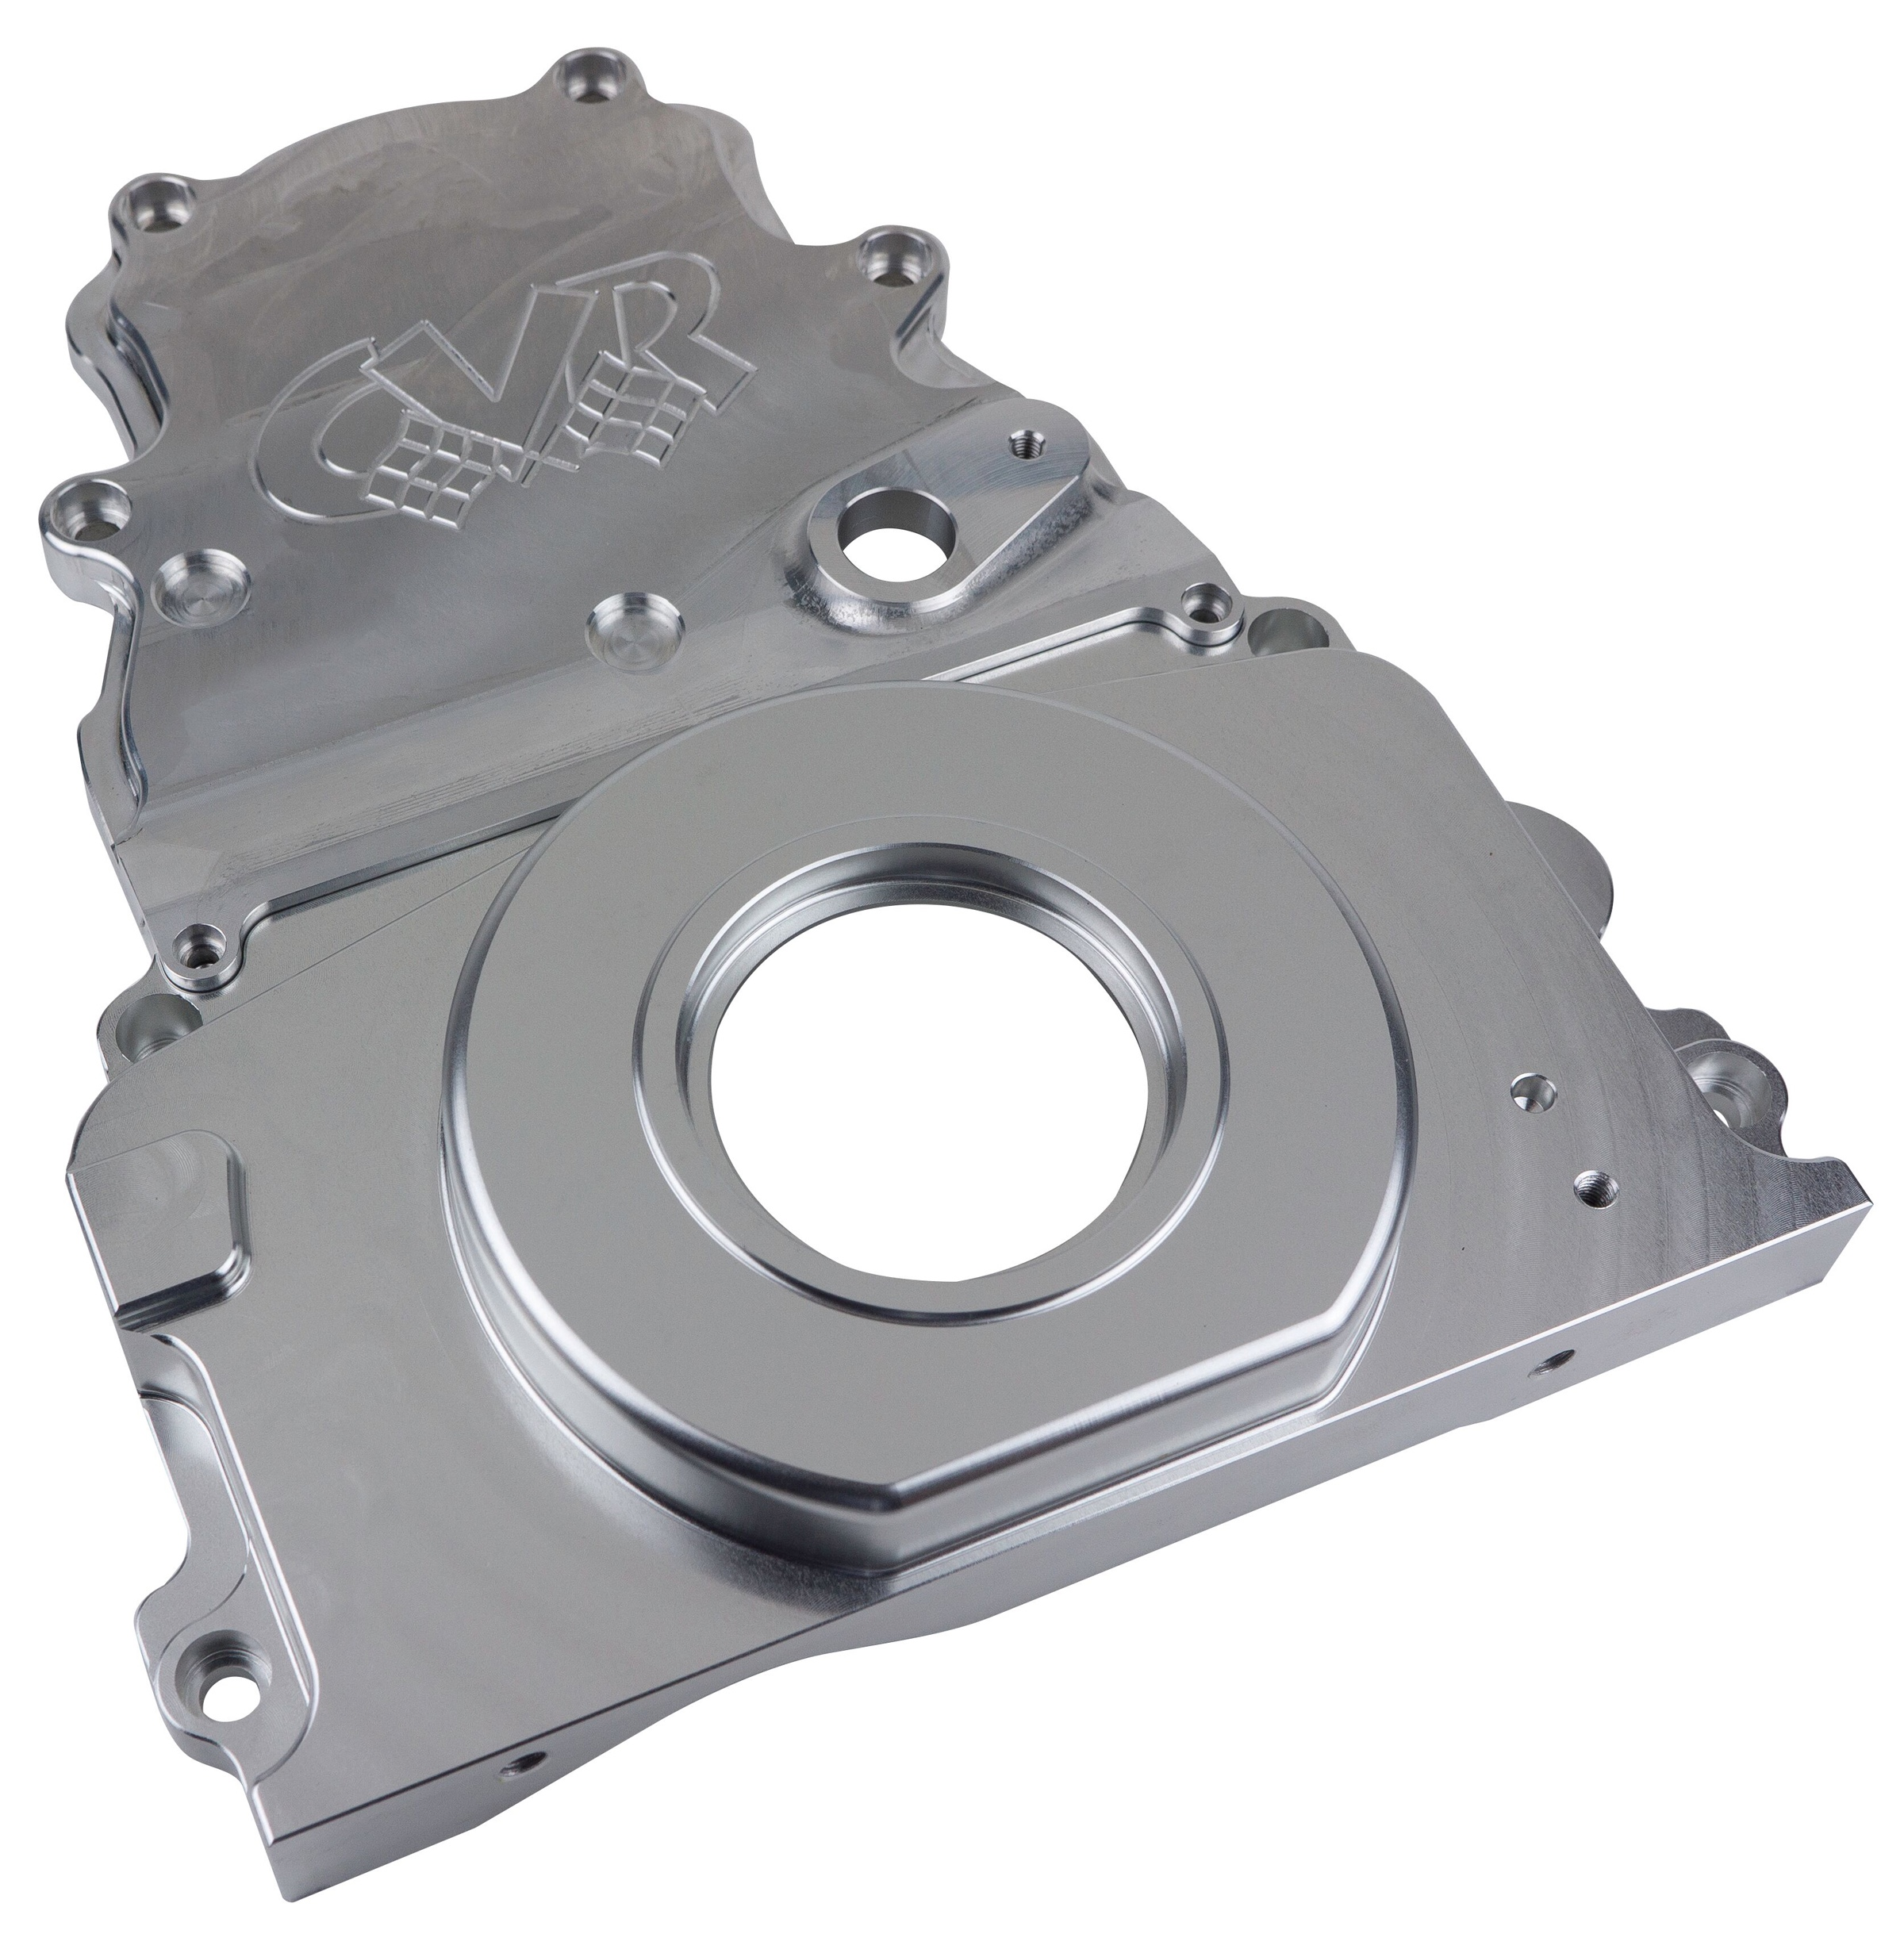 Atech Motorsports is now selling CVR two-piece timing covers for GM LS engines.